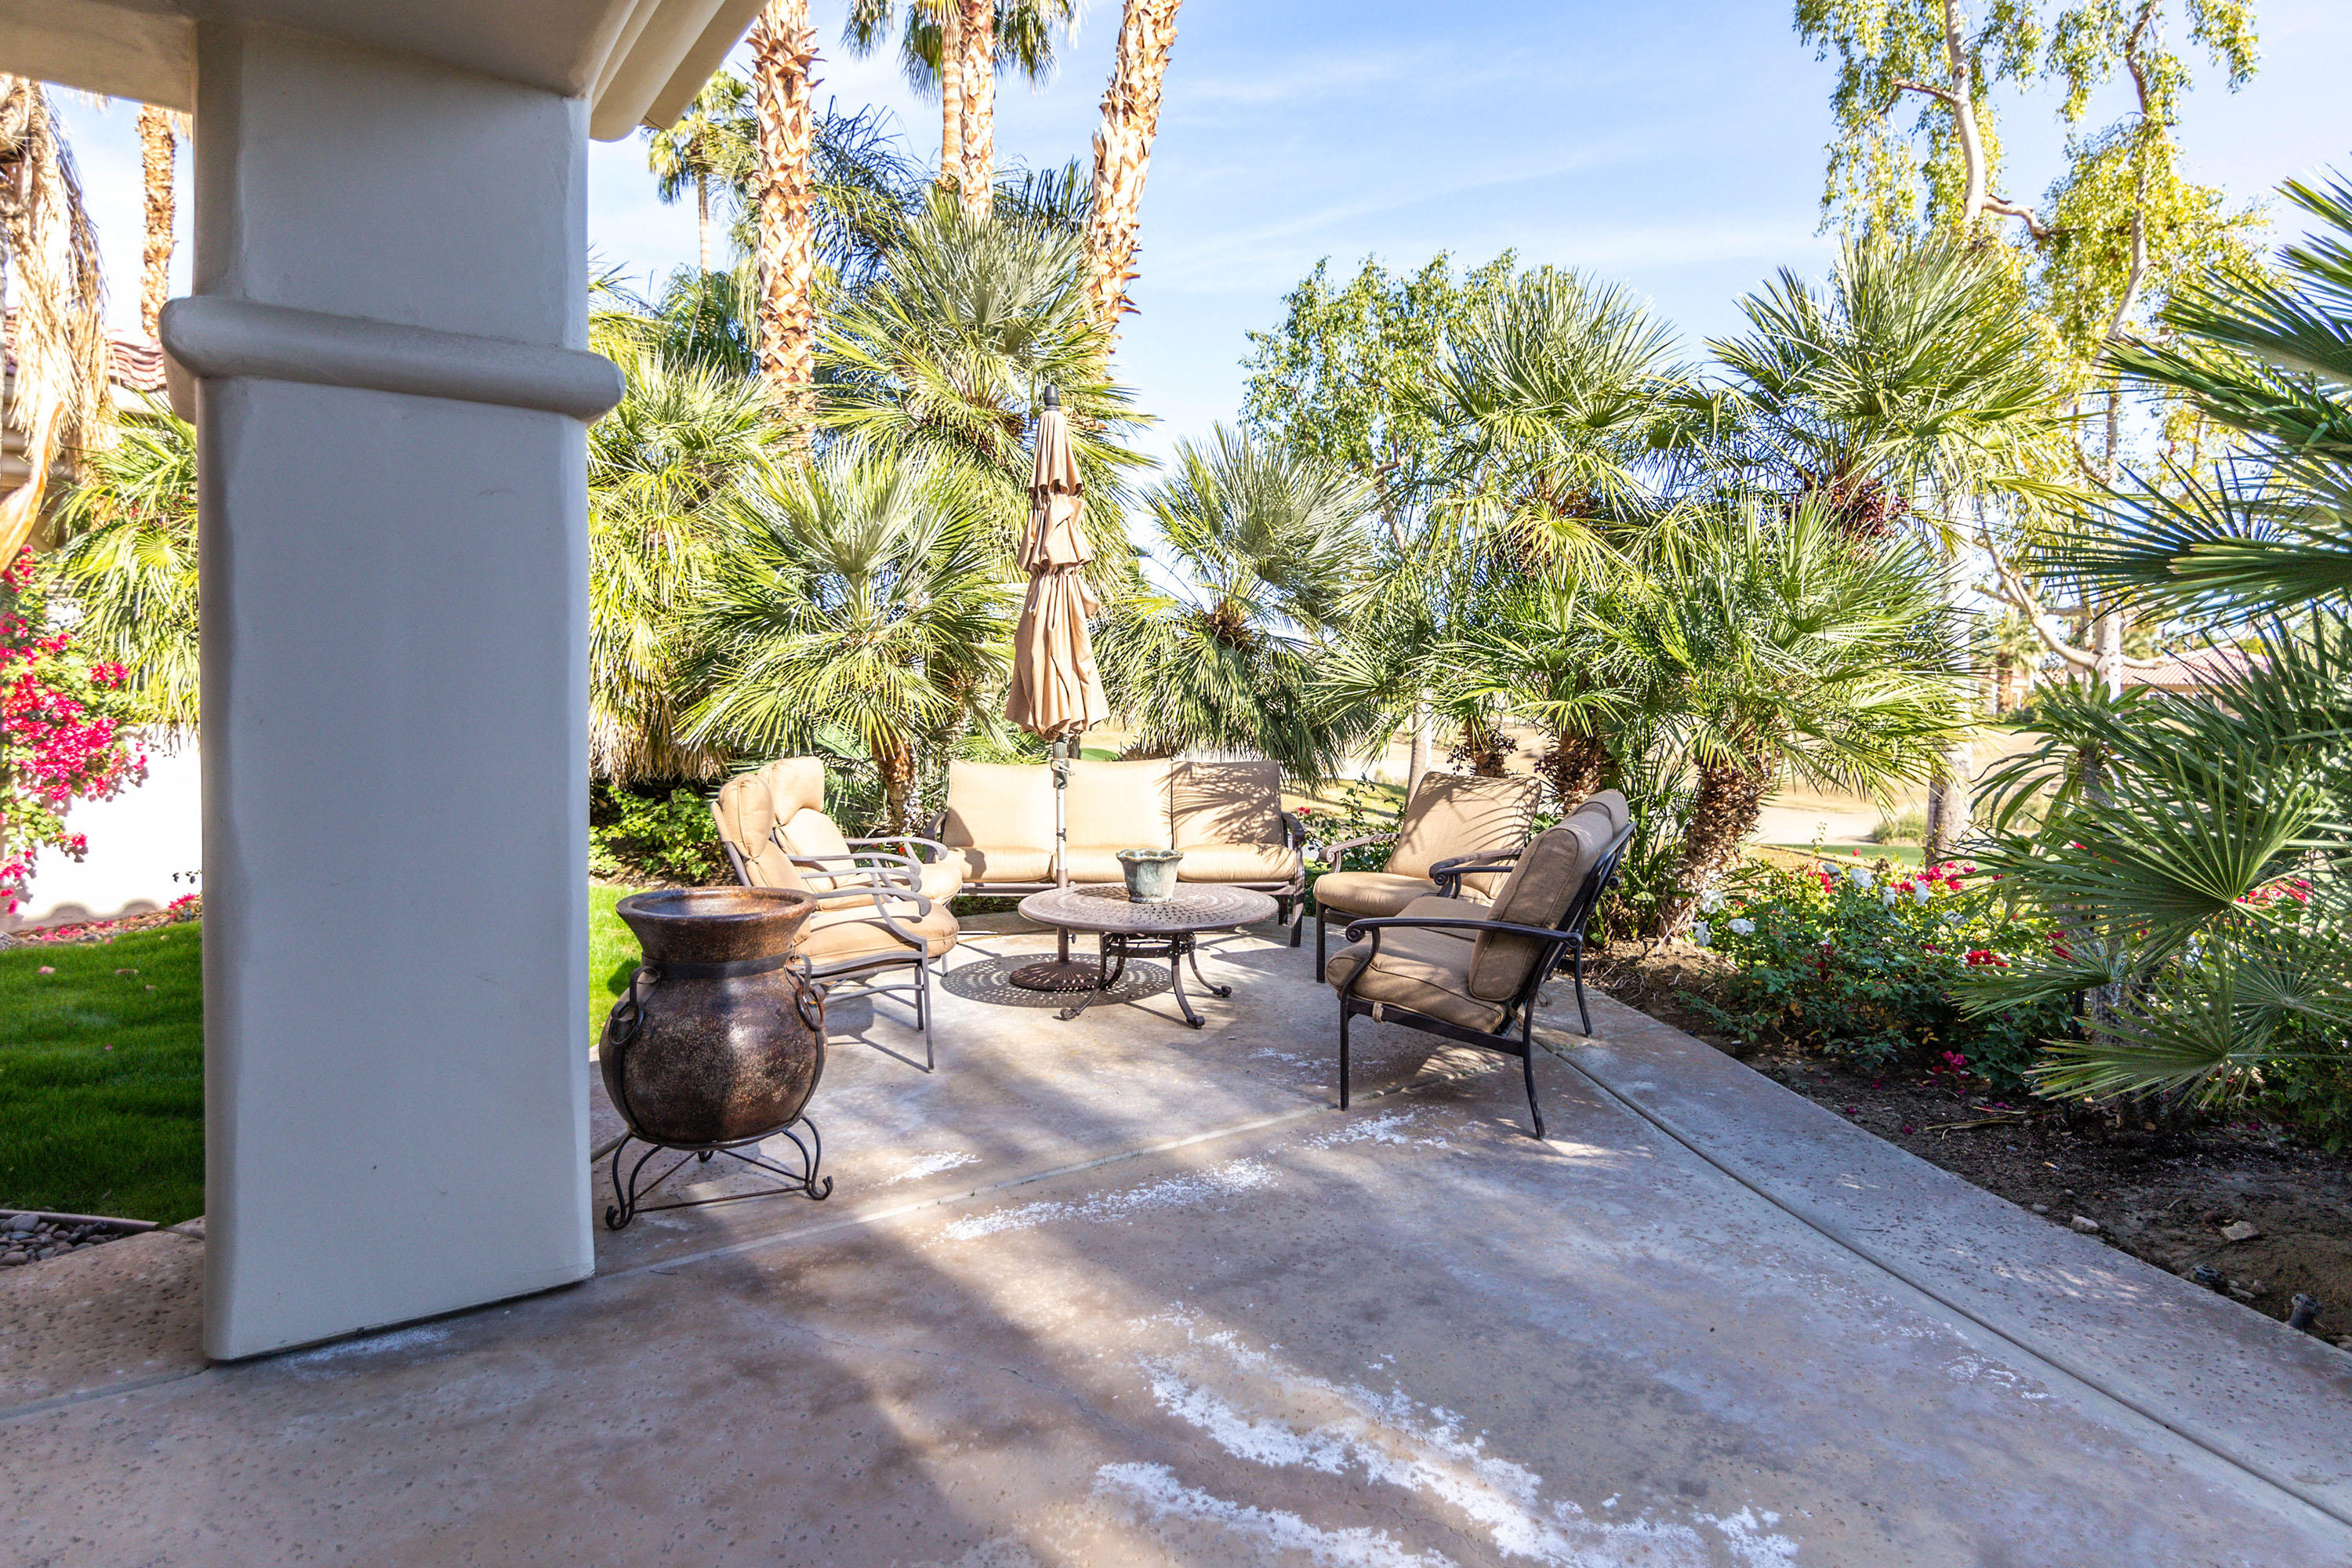 54988 Southern Hills, La Quinta, California 92253, 3 Bedrooms Bedrooms, ,4 BathroomsBathrooms,Residential,For Sale,54988 Southern Hills,219037367